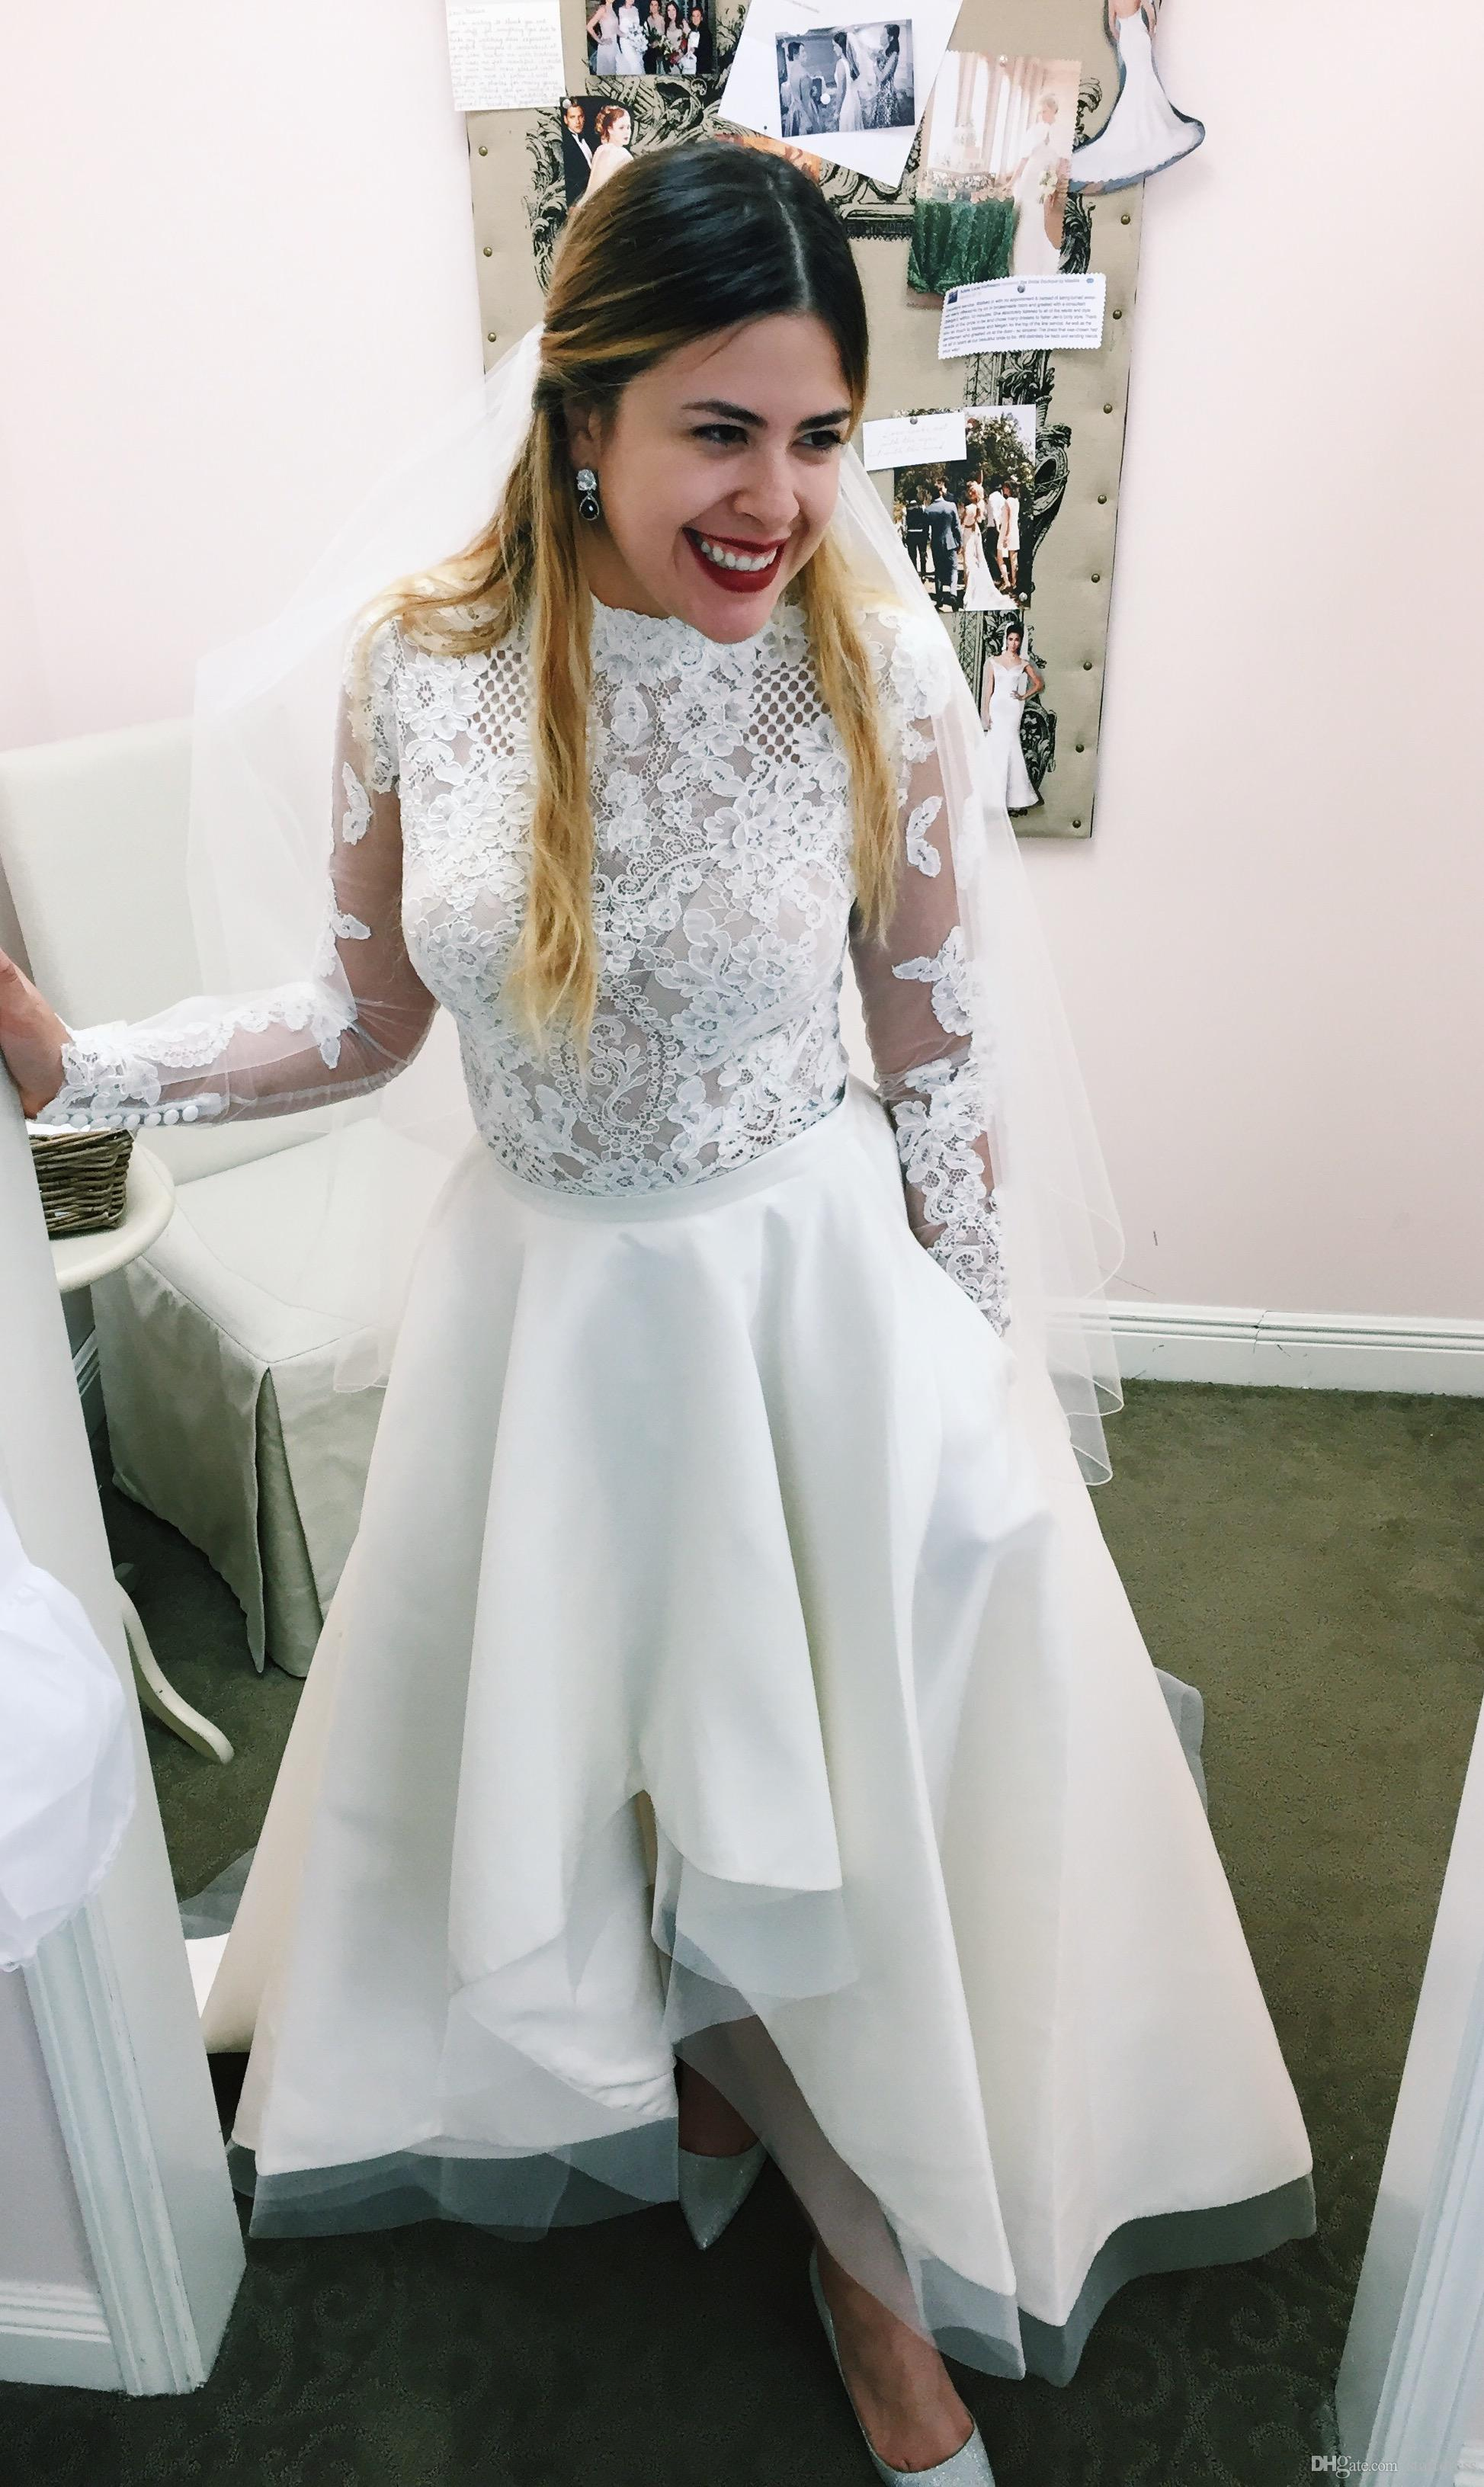 c8d20f37aff17 Discount Simple Ivory Top Lace Hi Low Designer A Line Wedding Dresses Jewel  Illusion Country Garden Bridal Gown Floral Petite Long Sleeve Bohemian High  ...